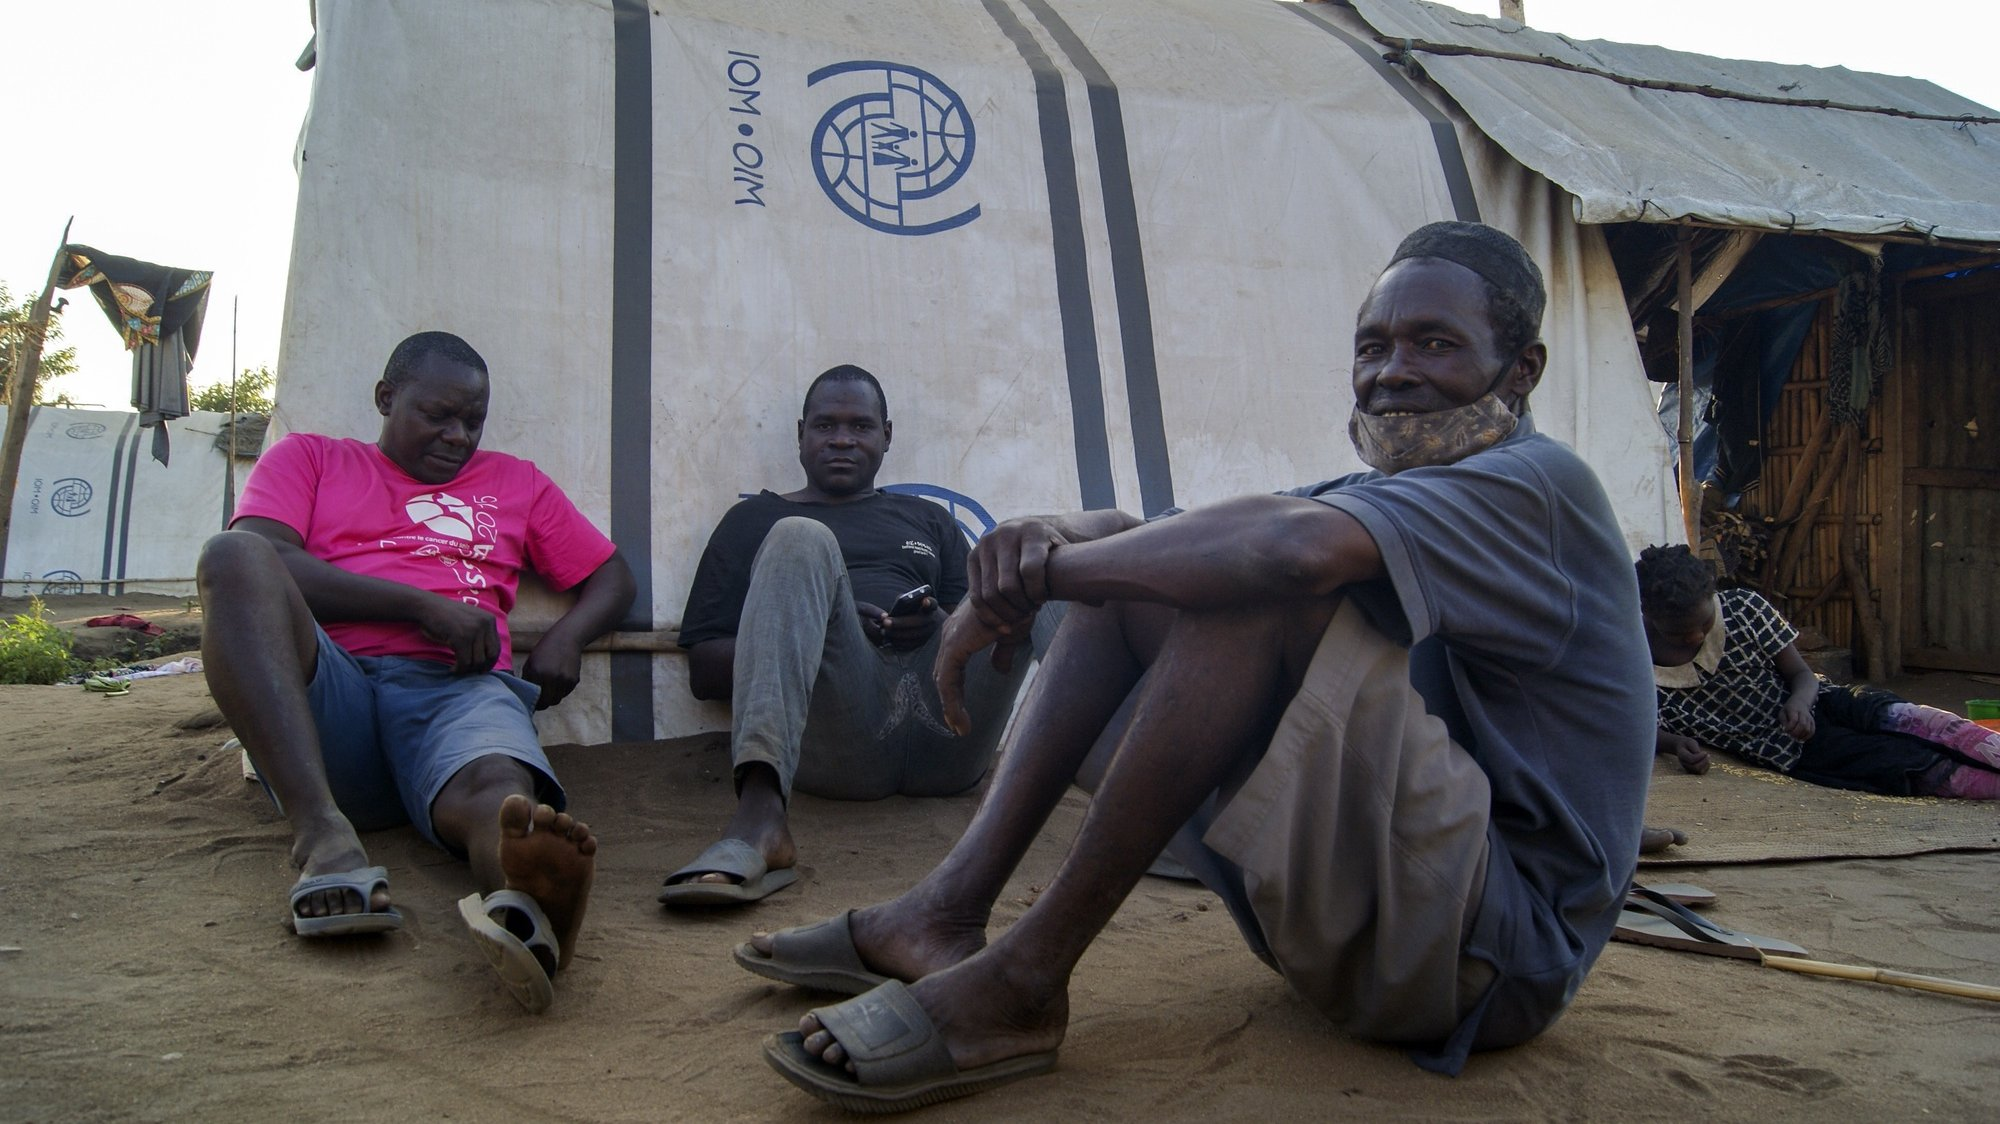 epa09417541 Men sit in one of the shelter camps in Metuge, a space housing displaced people fleeing armed violence in northern Mozambique, Cabo Delgado, Mozambique, 16 August 2021 (issued 17 August 2021). Following the attacks, which have terrorized Cabo Delgado province since 2017, there are more than 3,100 deaths, according to the ACLED conflict registration project, and more than 817,000 displaced people, according to Mozambican authorities.  EPA/LUISA NHANTUMBO